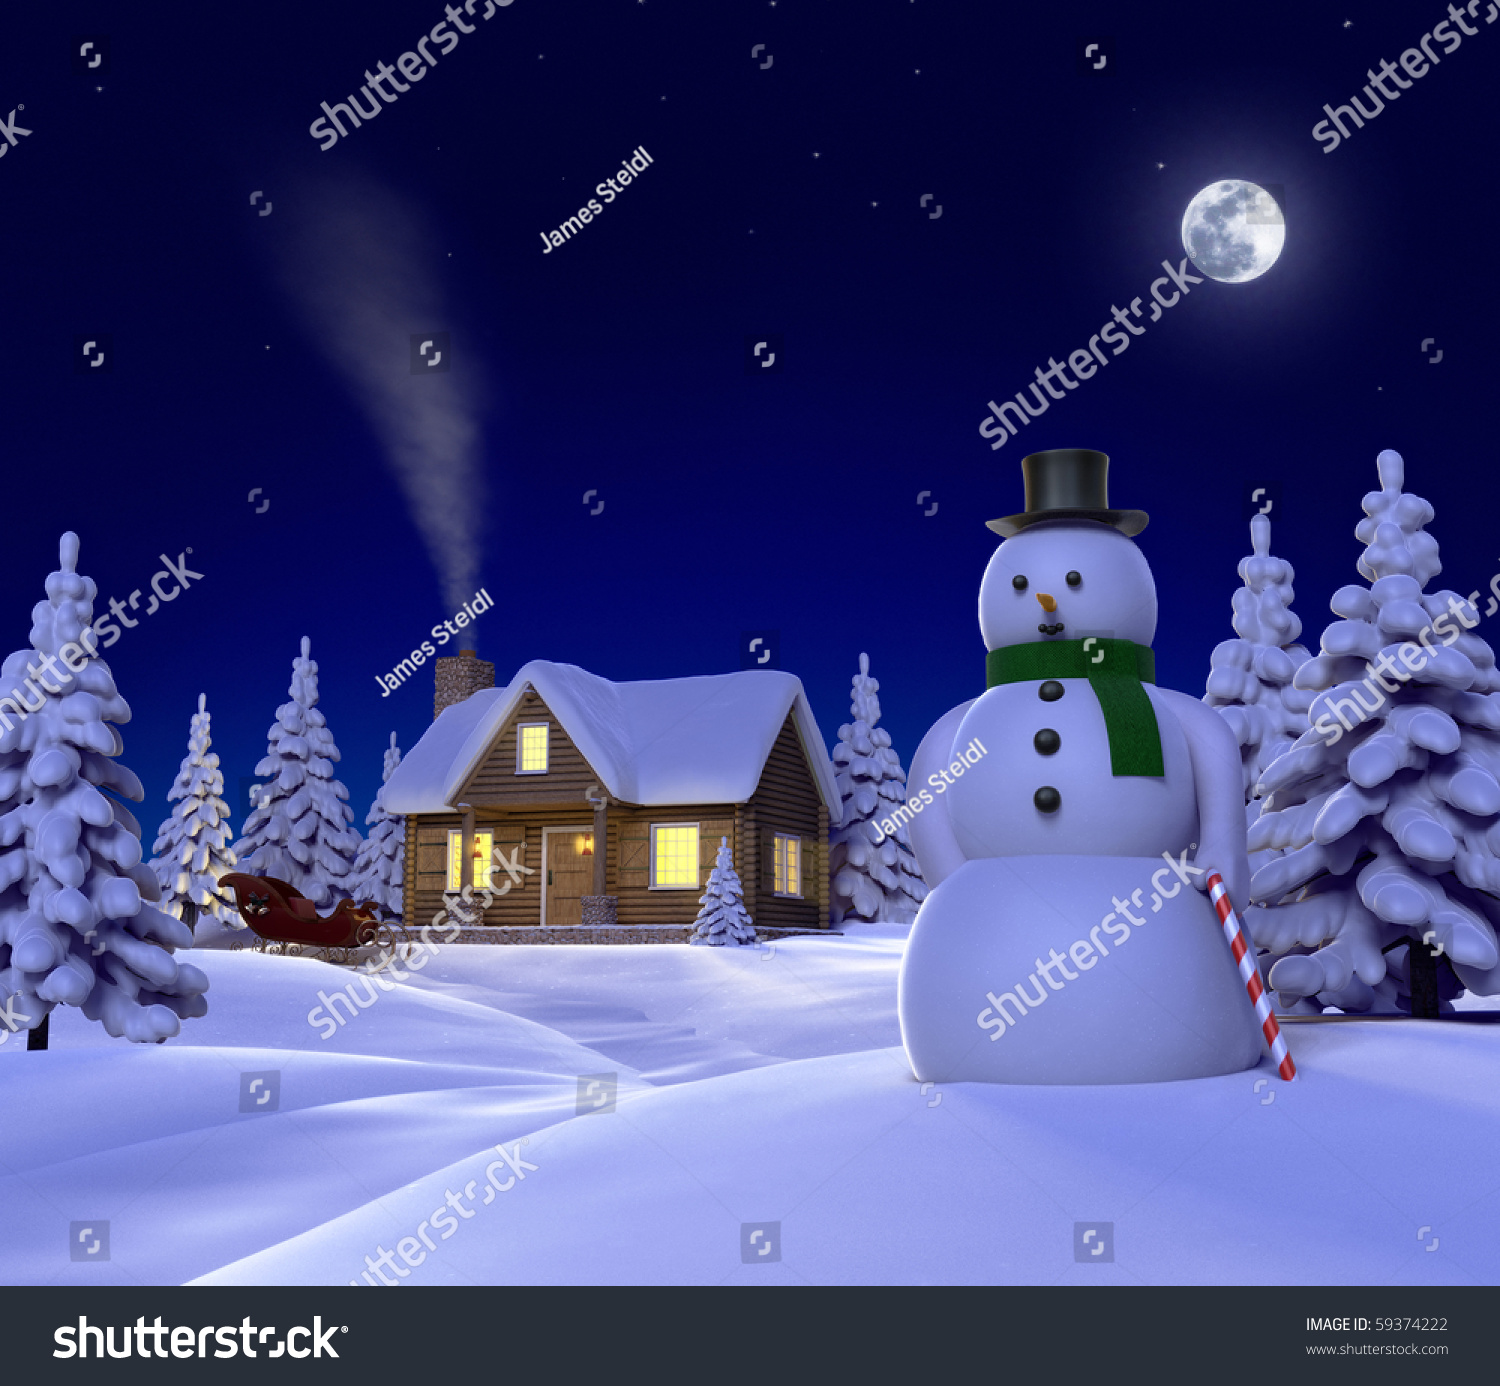 A Christmas Themed Snow Scene Showing Snowman Cabin And